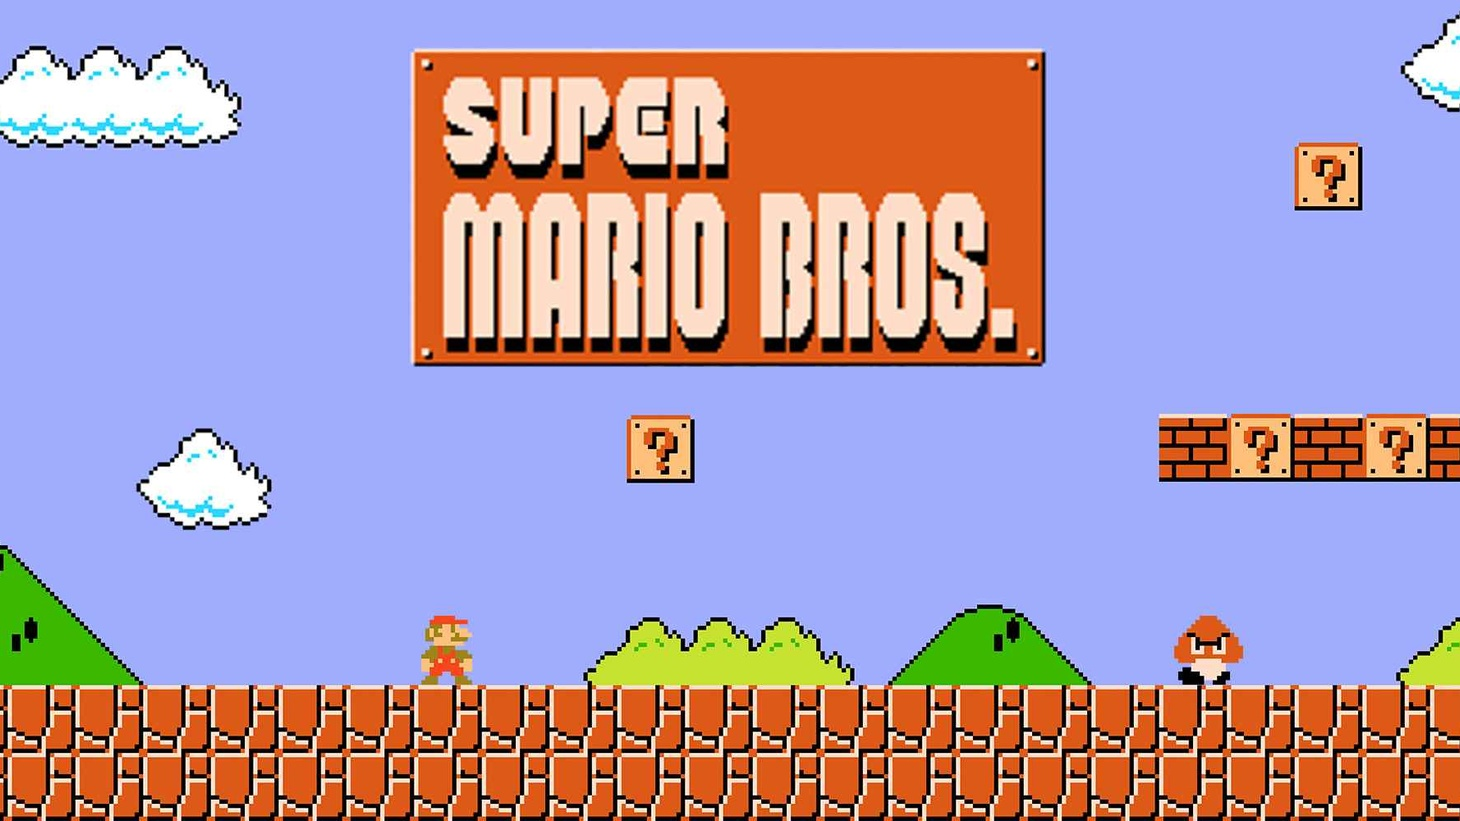 Since its launch in 1985, Super Mario has helped mold the modern-day video game industry.